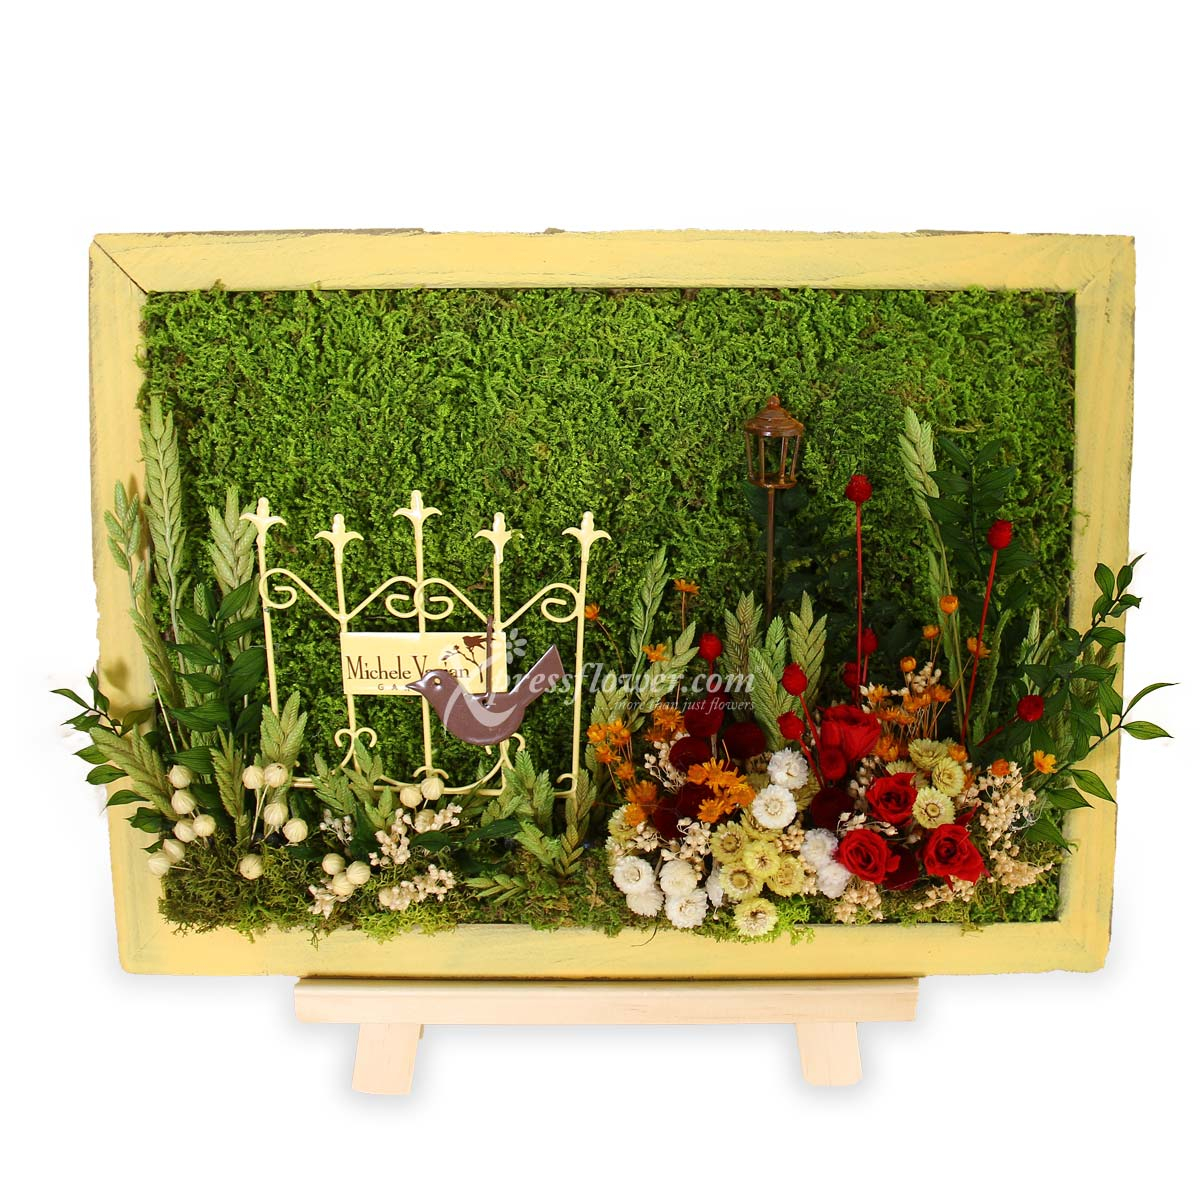 Morning Garden (Moss art with preserved flowers)